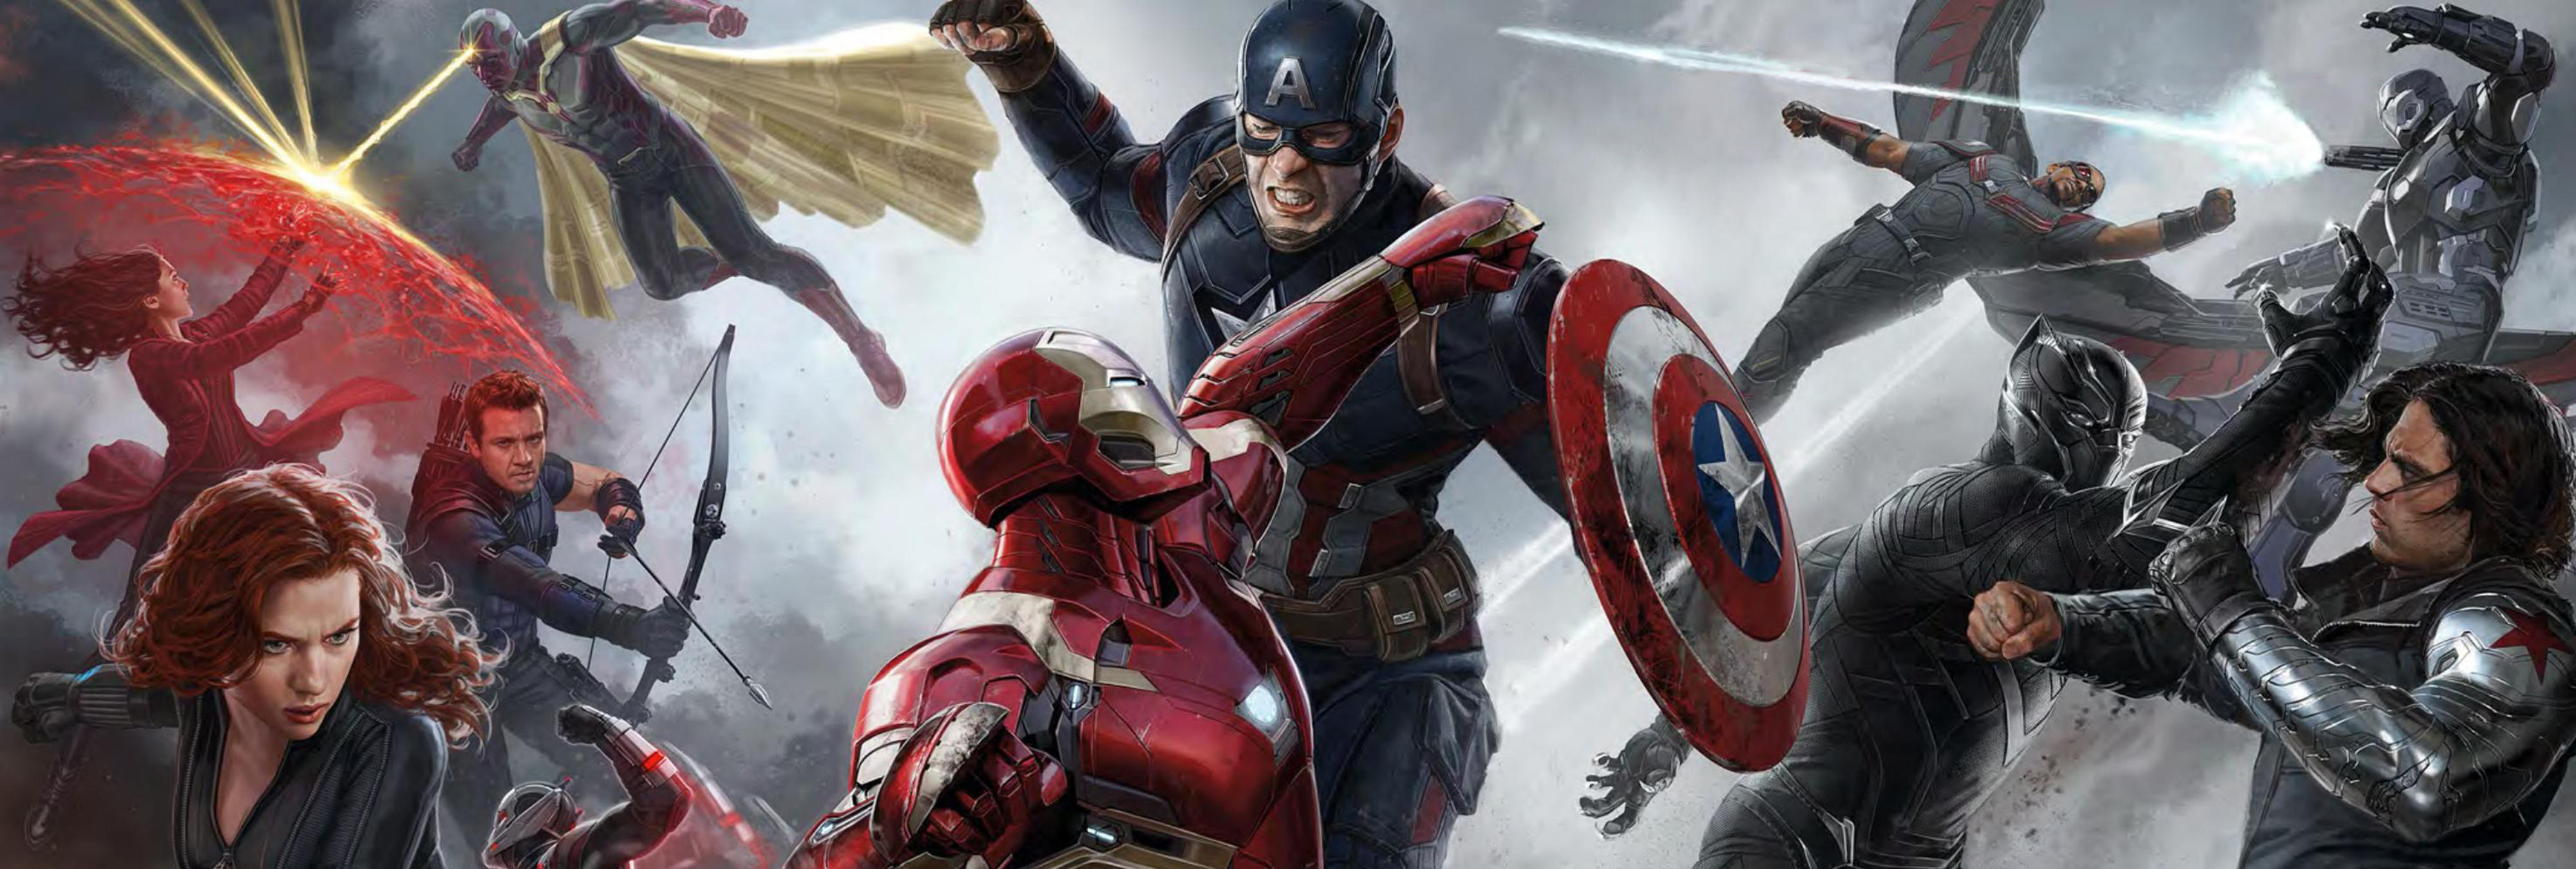 El repaso definitivo a los superhéroes de 'Capitán América: Civil War'